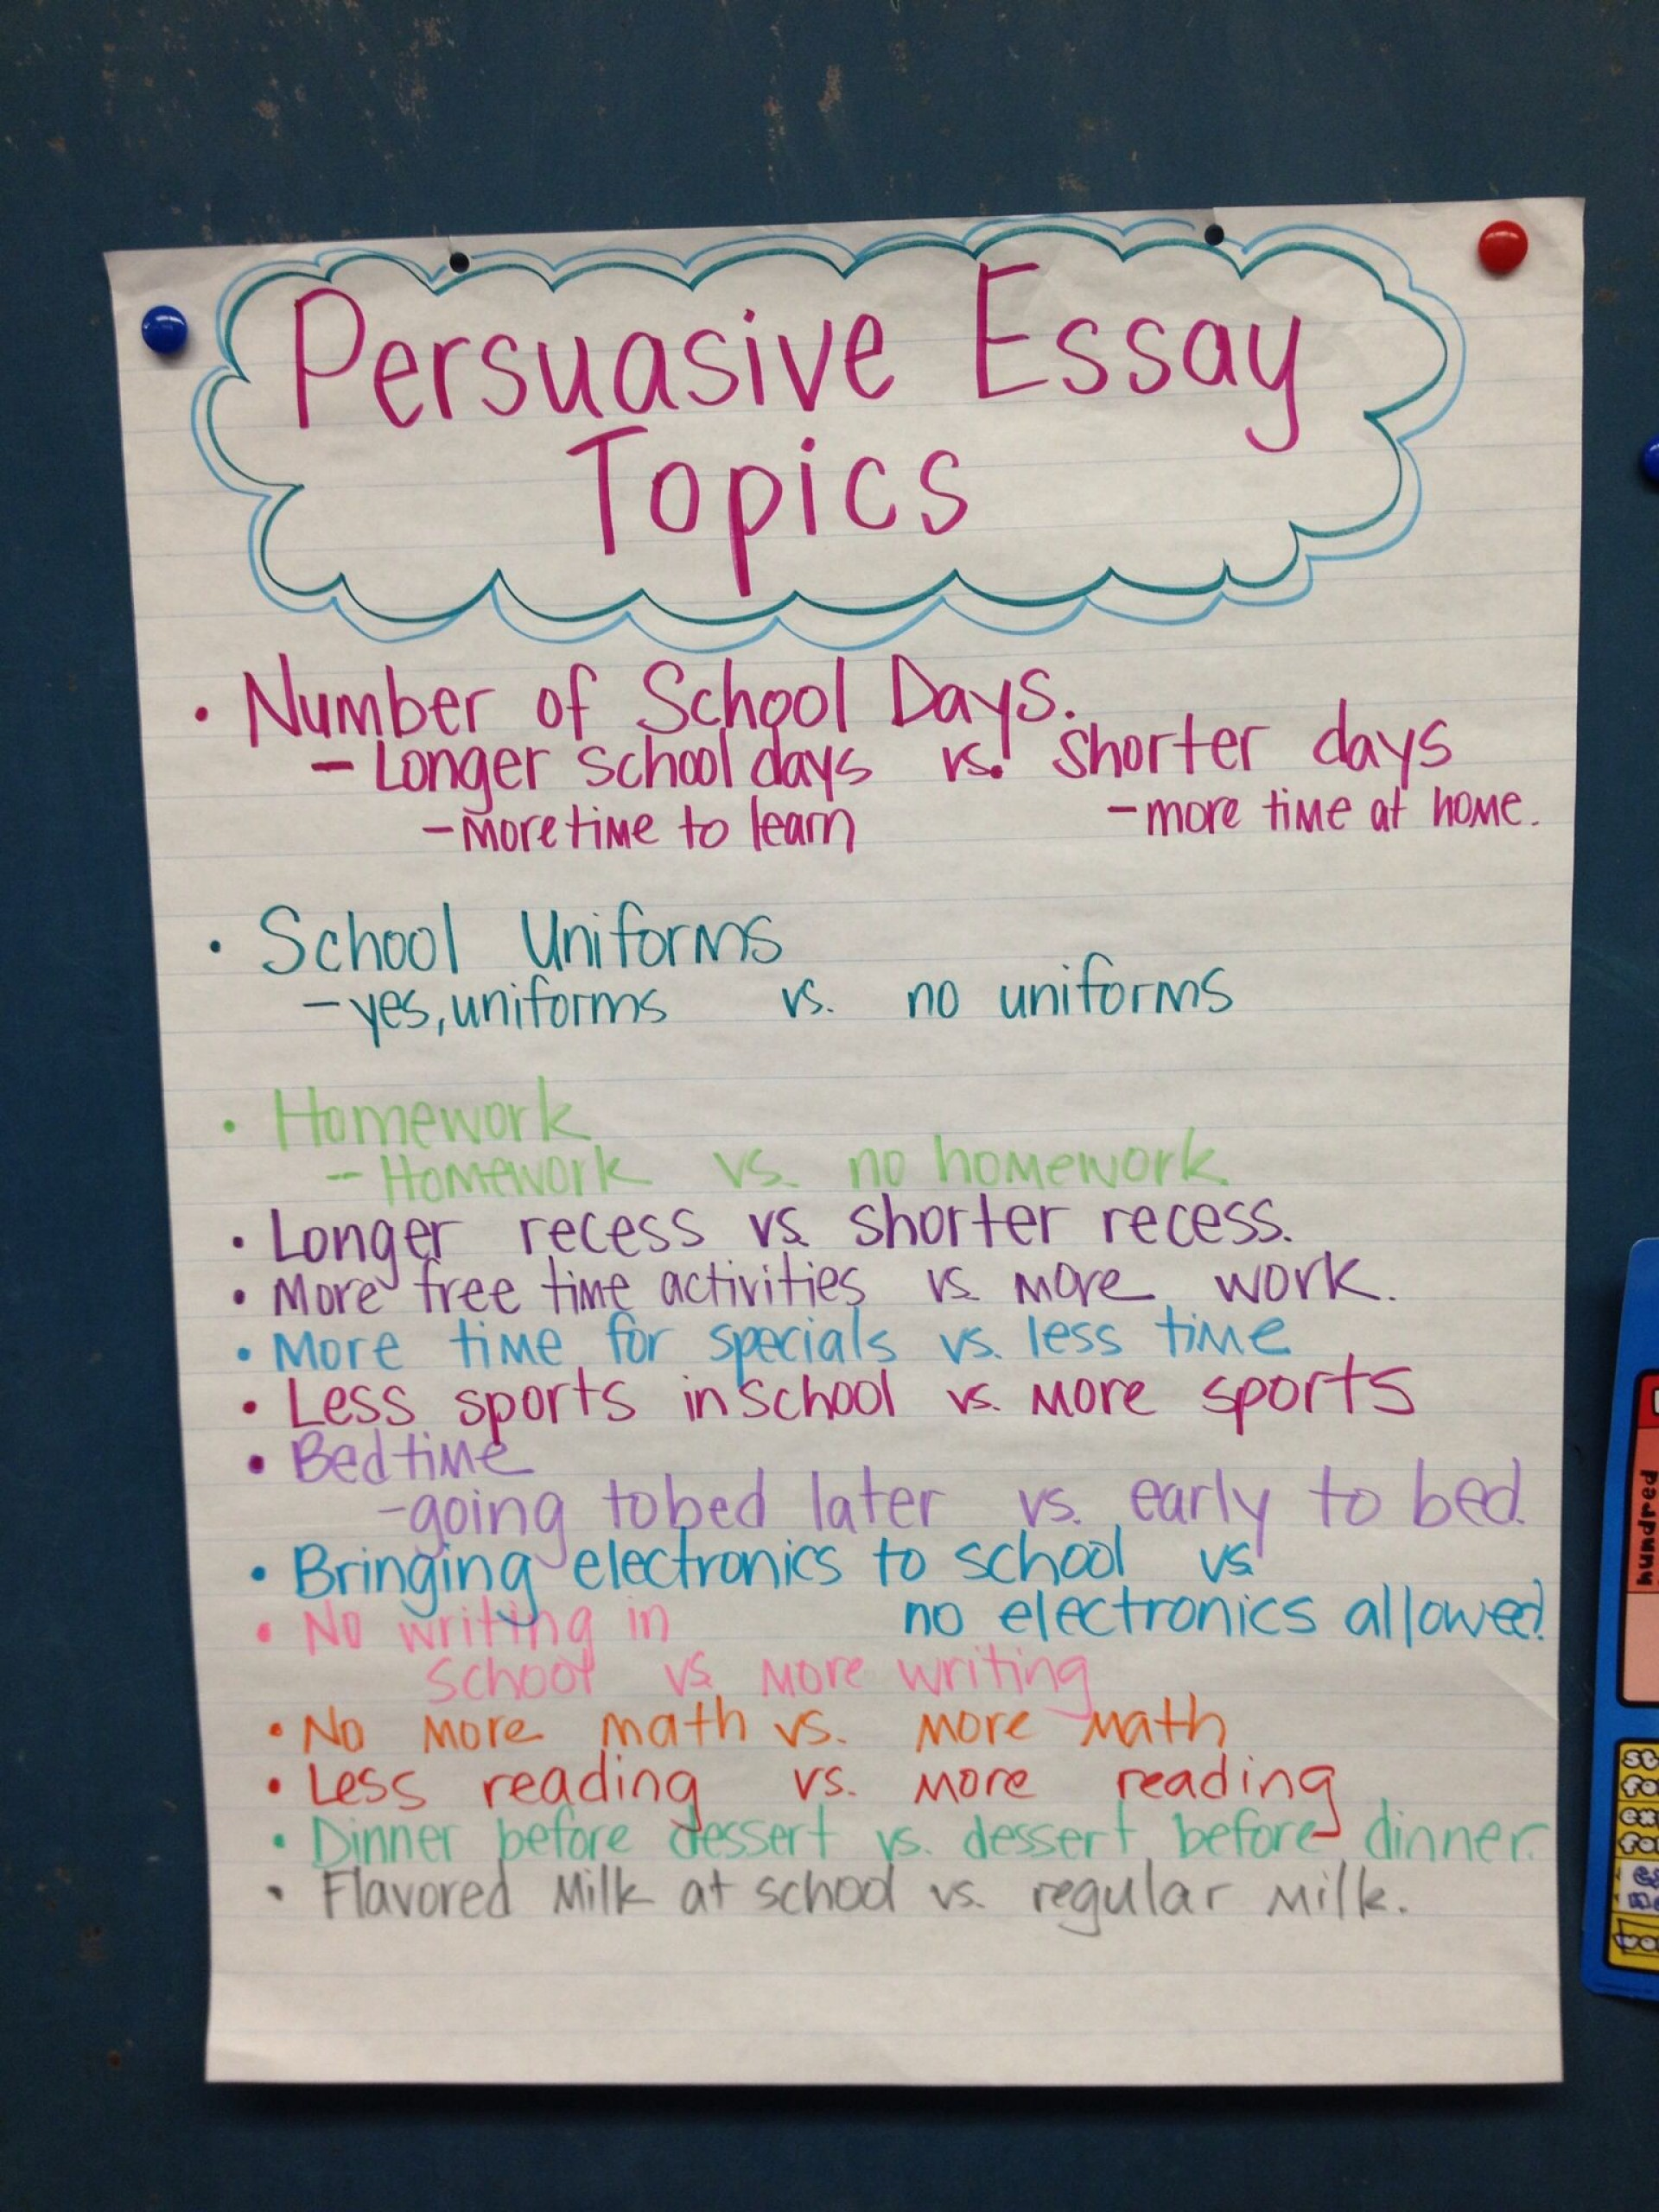 003 Ideas For Persuasive Essays Essay Example Stunning 4th Grade Prompts Middle School Uk 1920